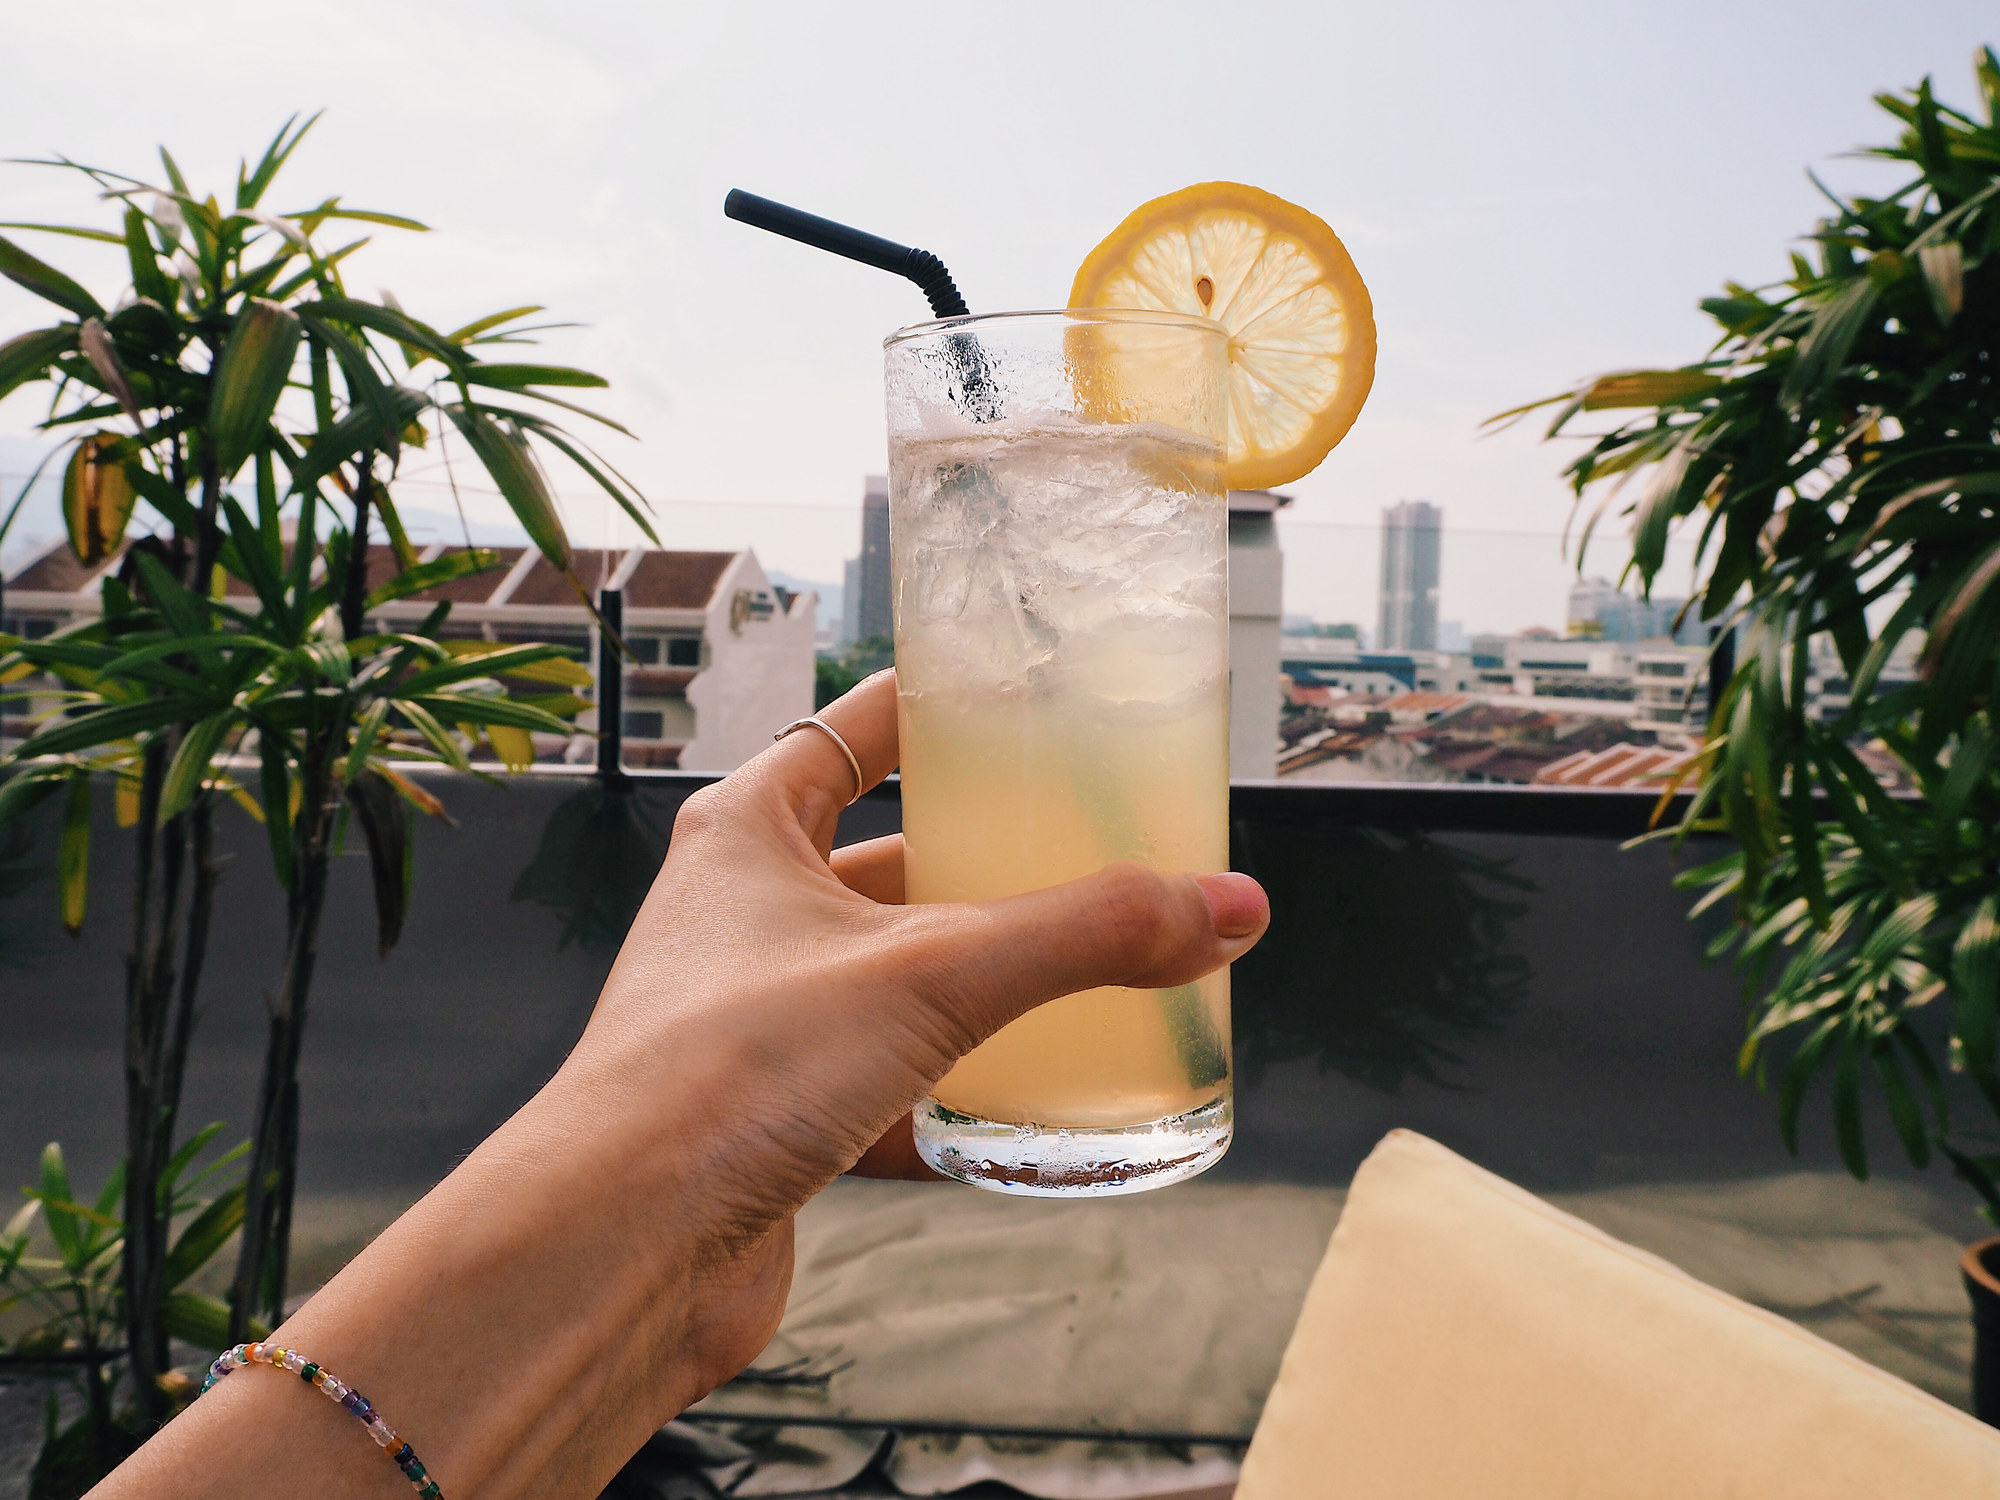 A woman's hand holding a cocktail up outside.